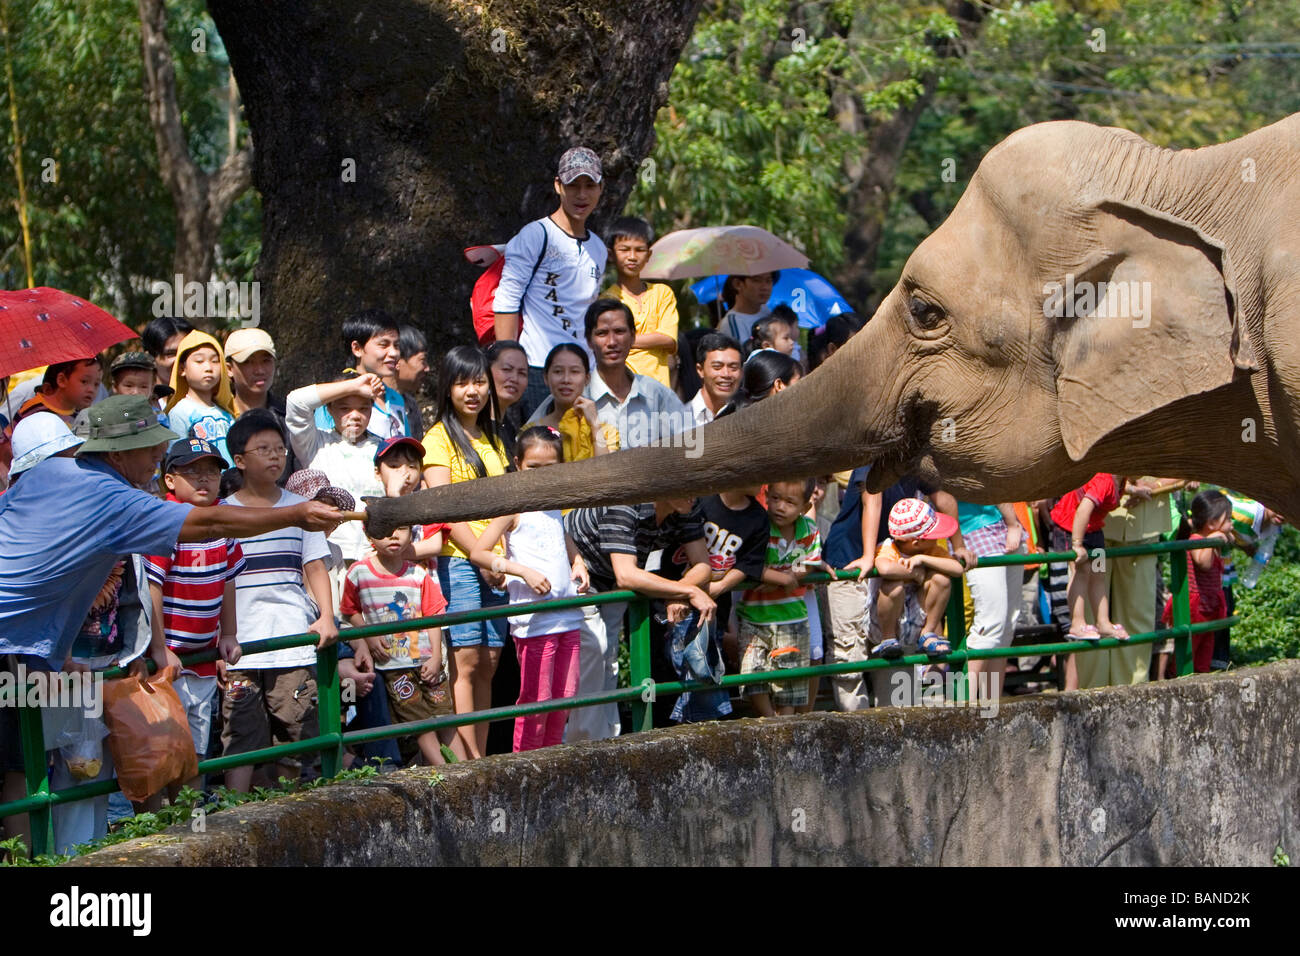 Visitors feed sugar cane to an asian elephant at the Saigon Zoo and Botanical Gardens in Ho Chi Minh City Vietnam - Stock Image